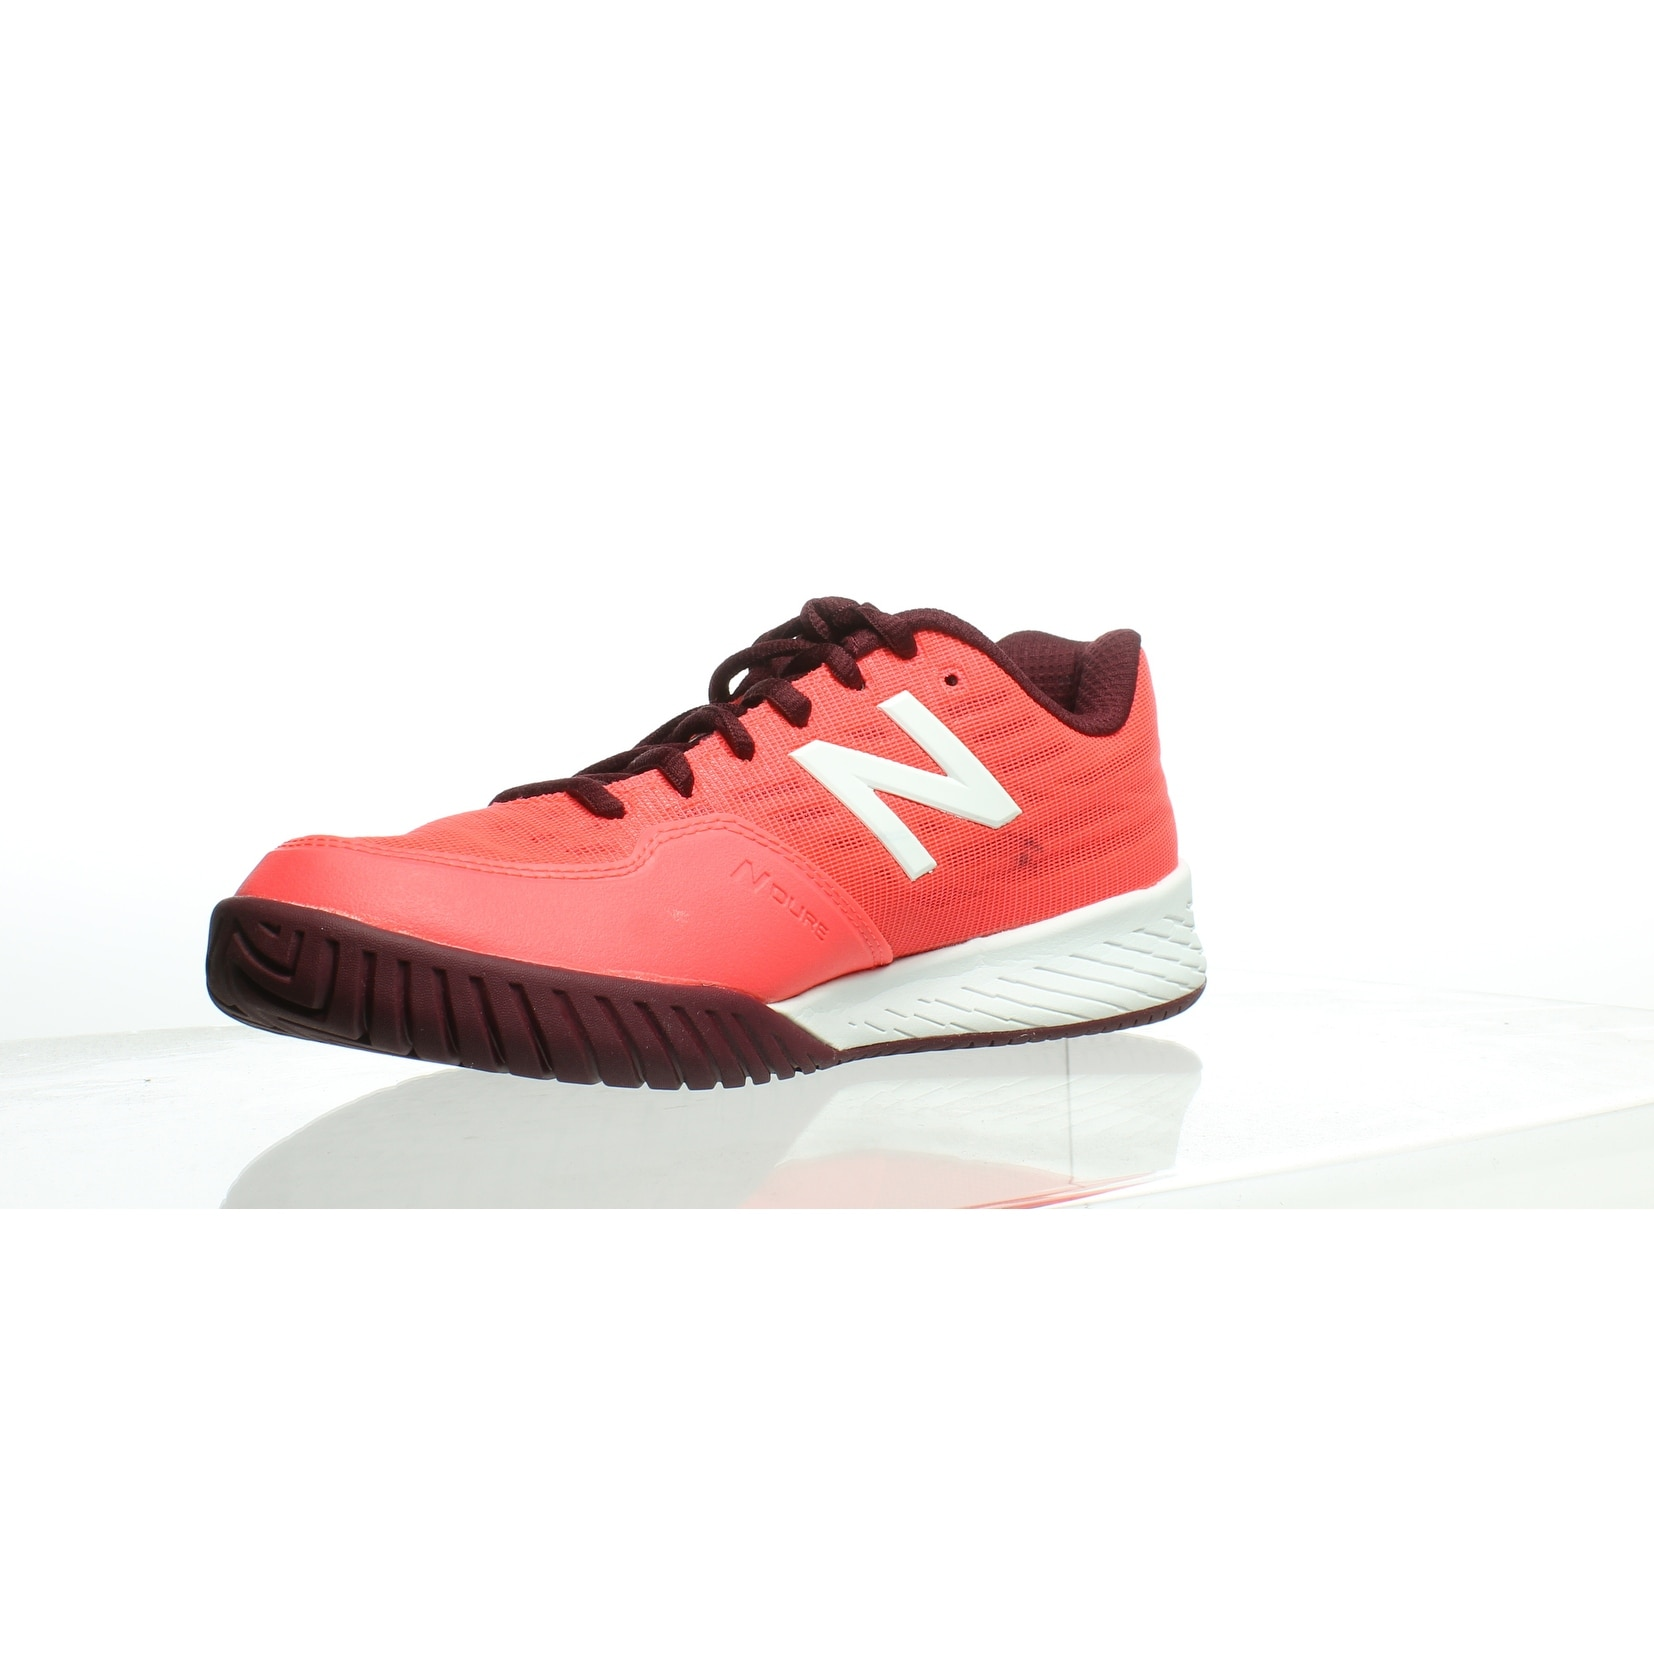 d0f3153bde7b3 Shop New Balance Womens Wch896v2 Orange Tennis Shoes Size 8.5 - Free  Shipping On Orders Over $45 - Overstock - 27639231